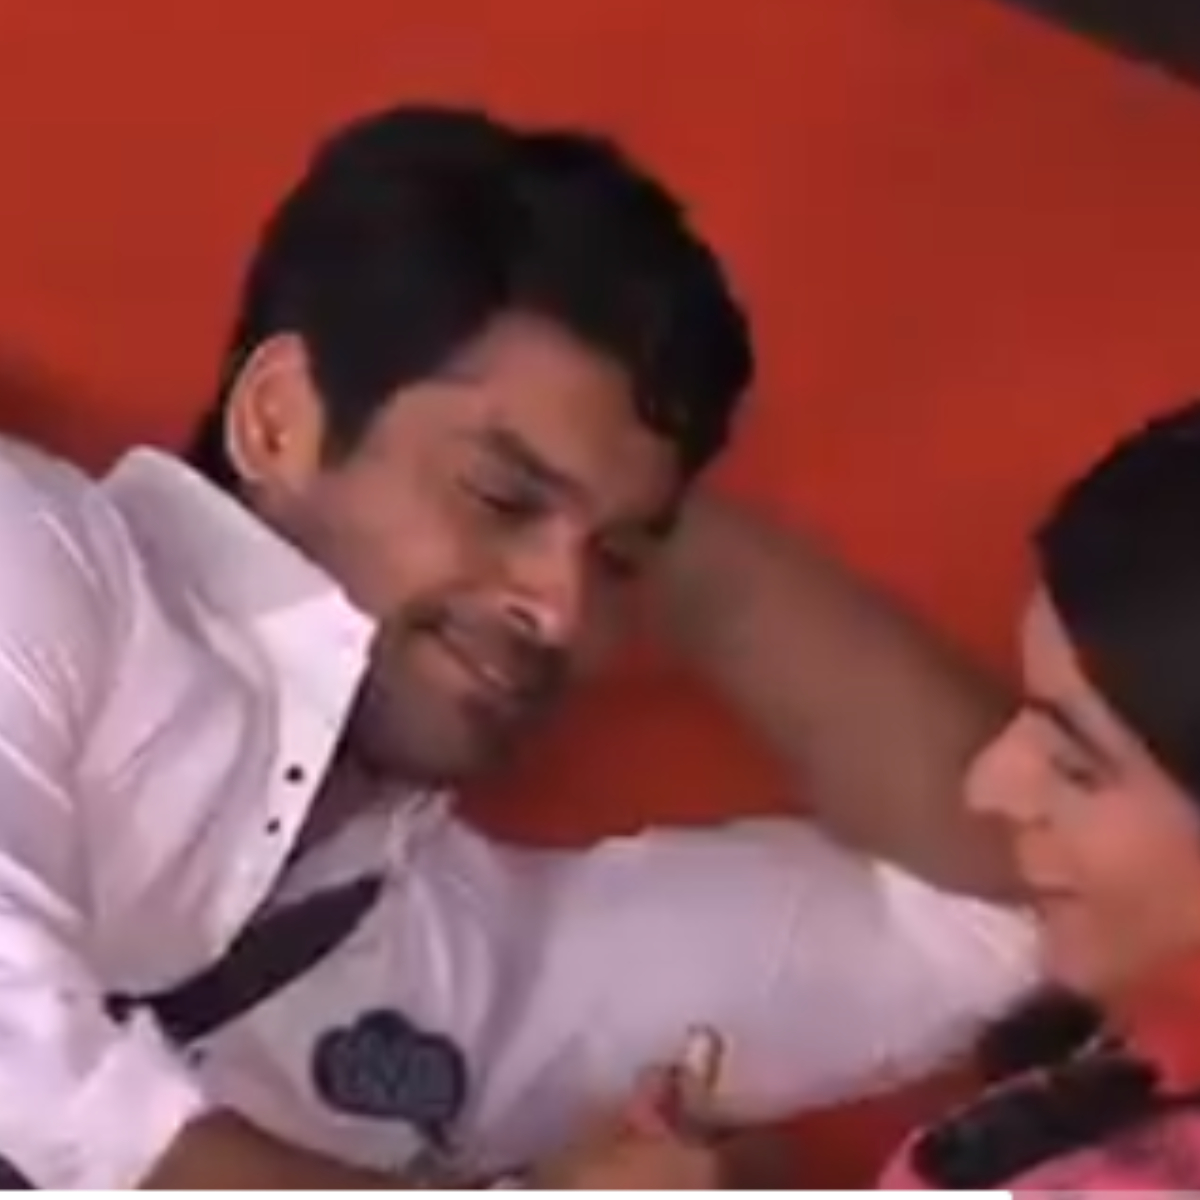 In the upcoming episode, we will see Sidharth Shukla getting all mushy and romantic with Guthi aka Sunil Gorve